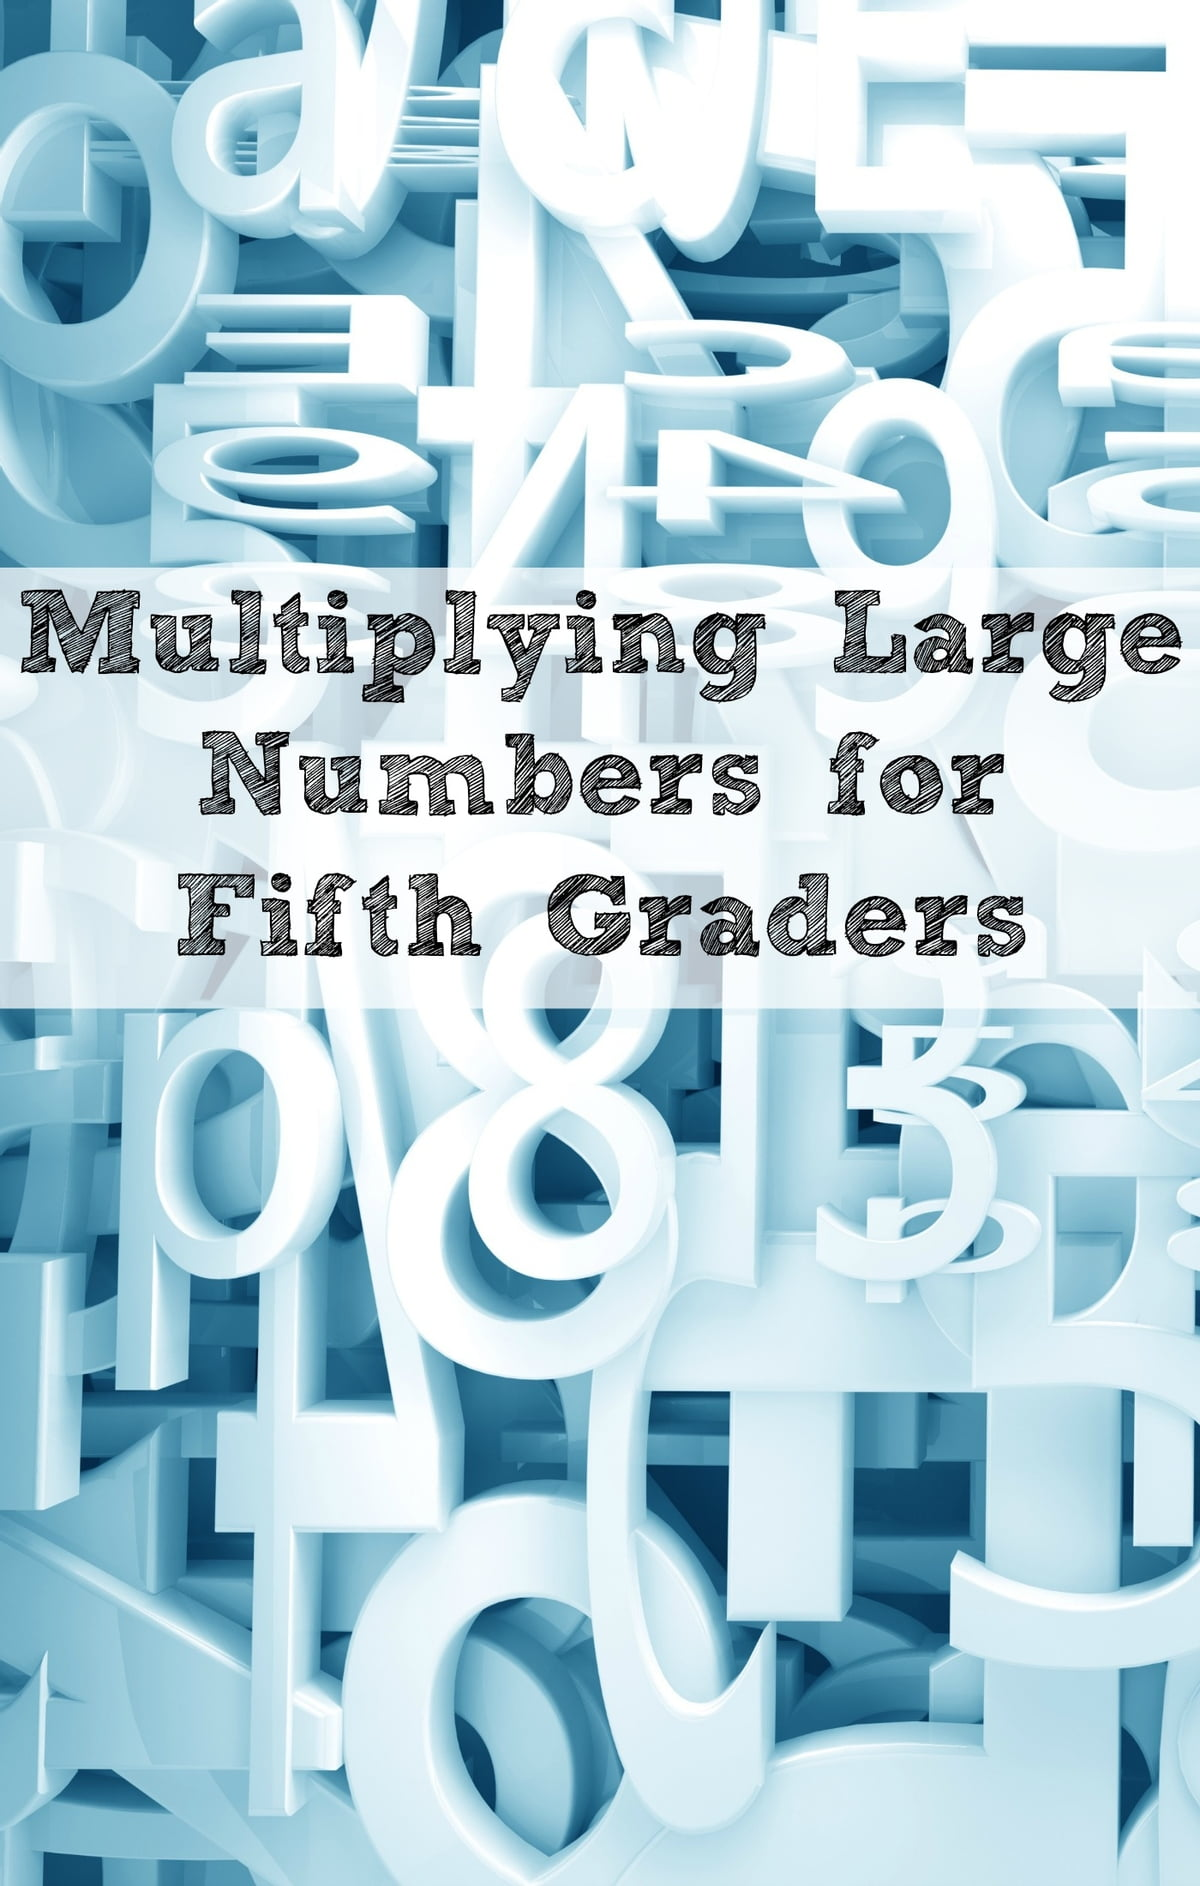 Multiplying Large Numbers for Fifth Graders eBook by Greg Sherman ...